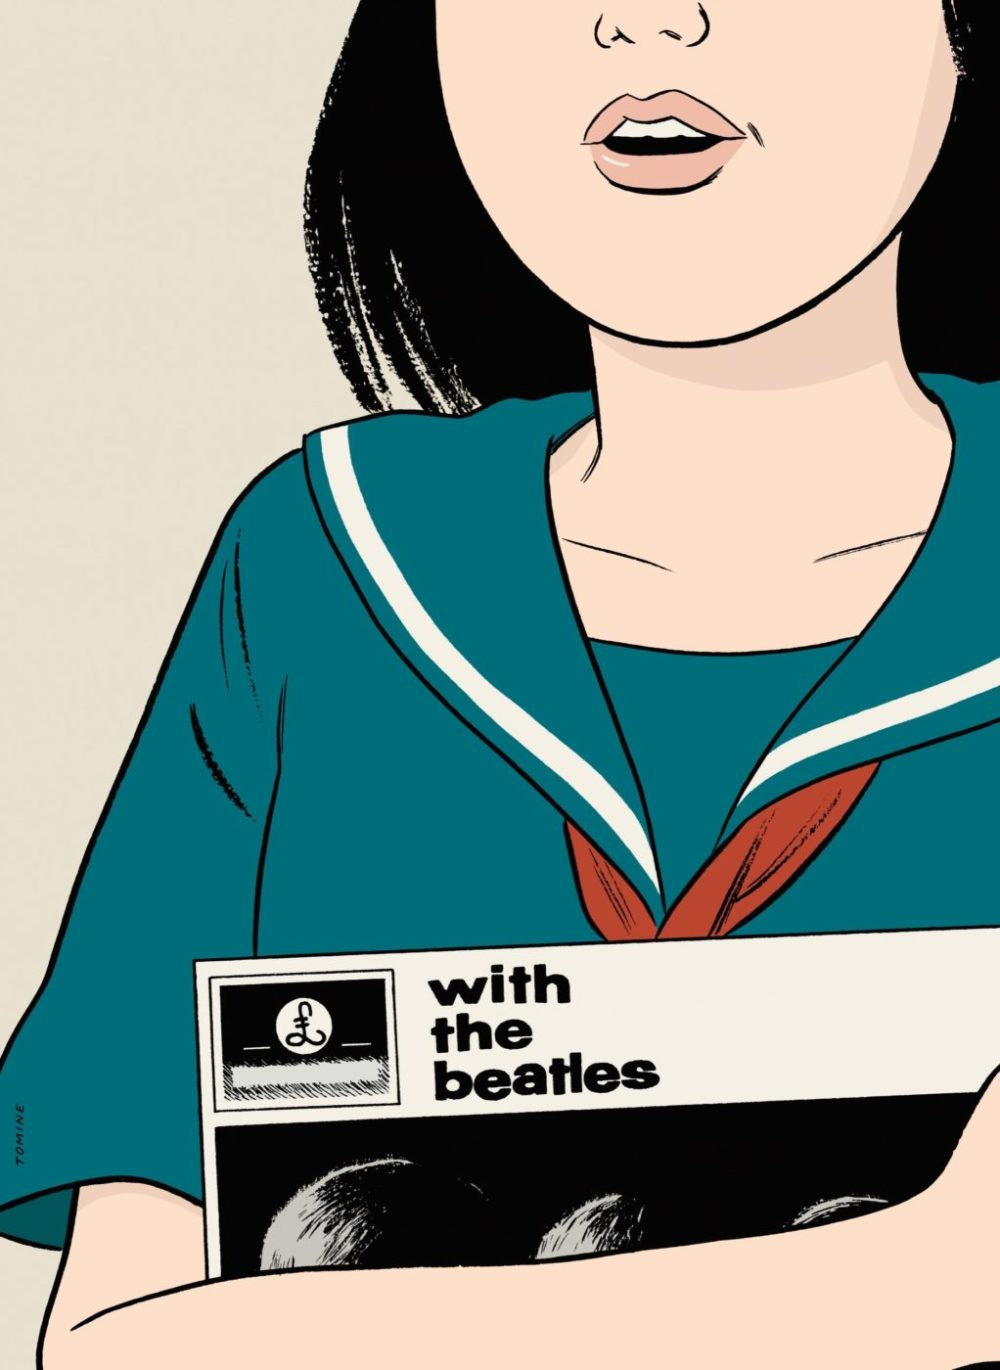 With the Beatles: um conto de Haruki Murakami ilustrado por Adrian Tomine